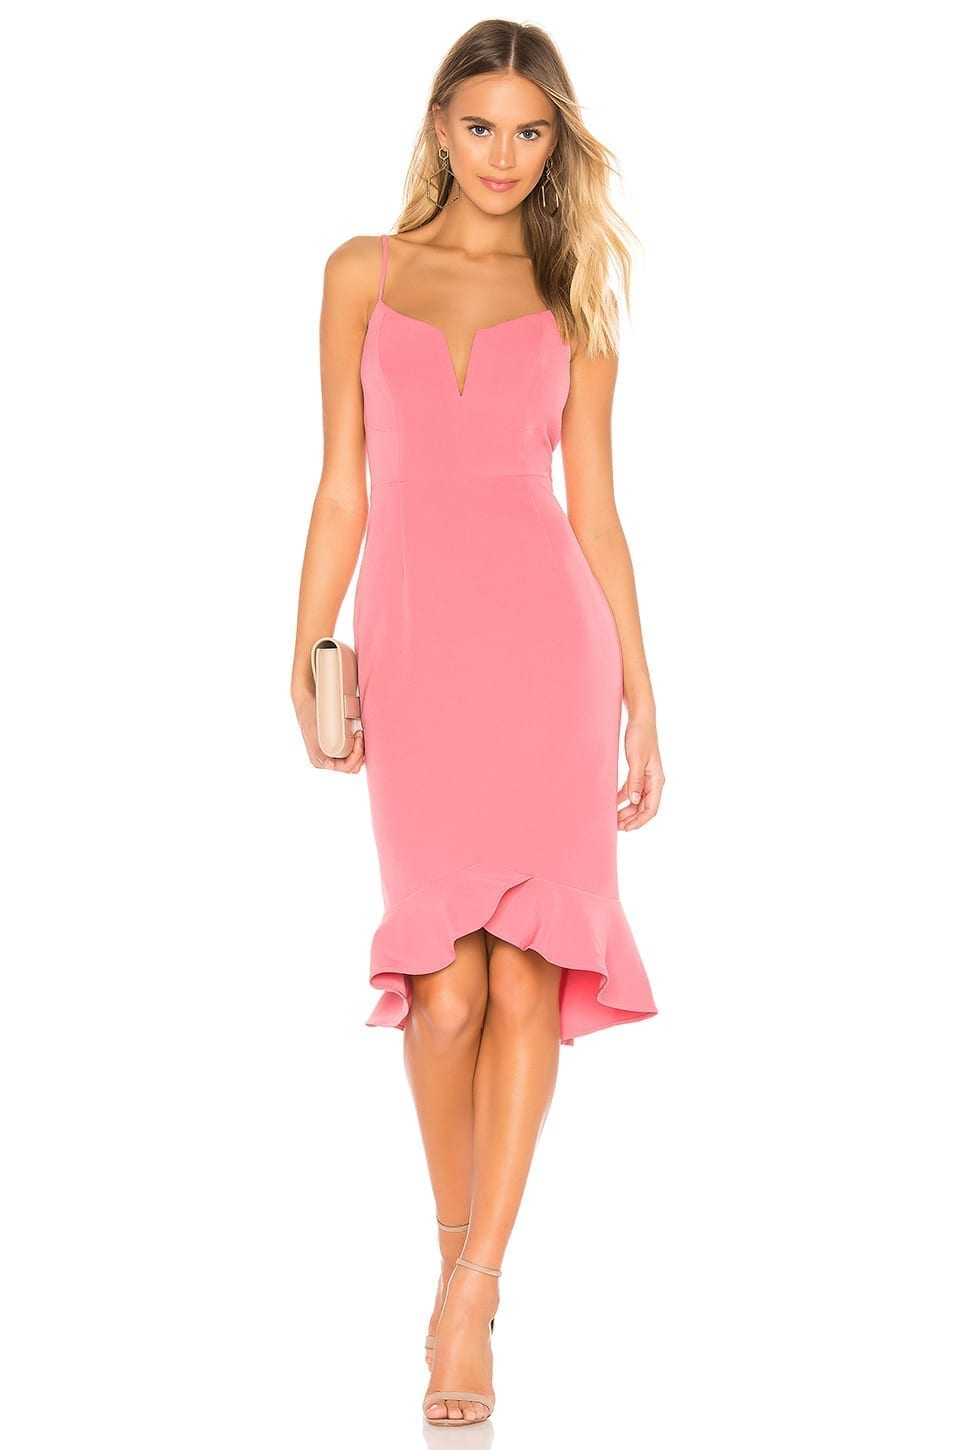 BARDOT Kristen Peplum Pink Dress